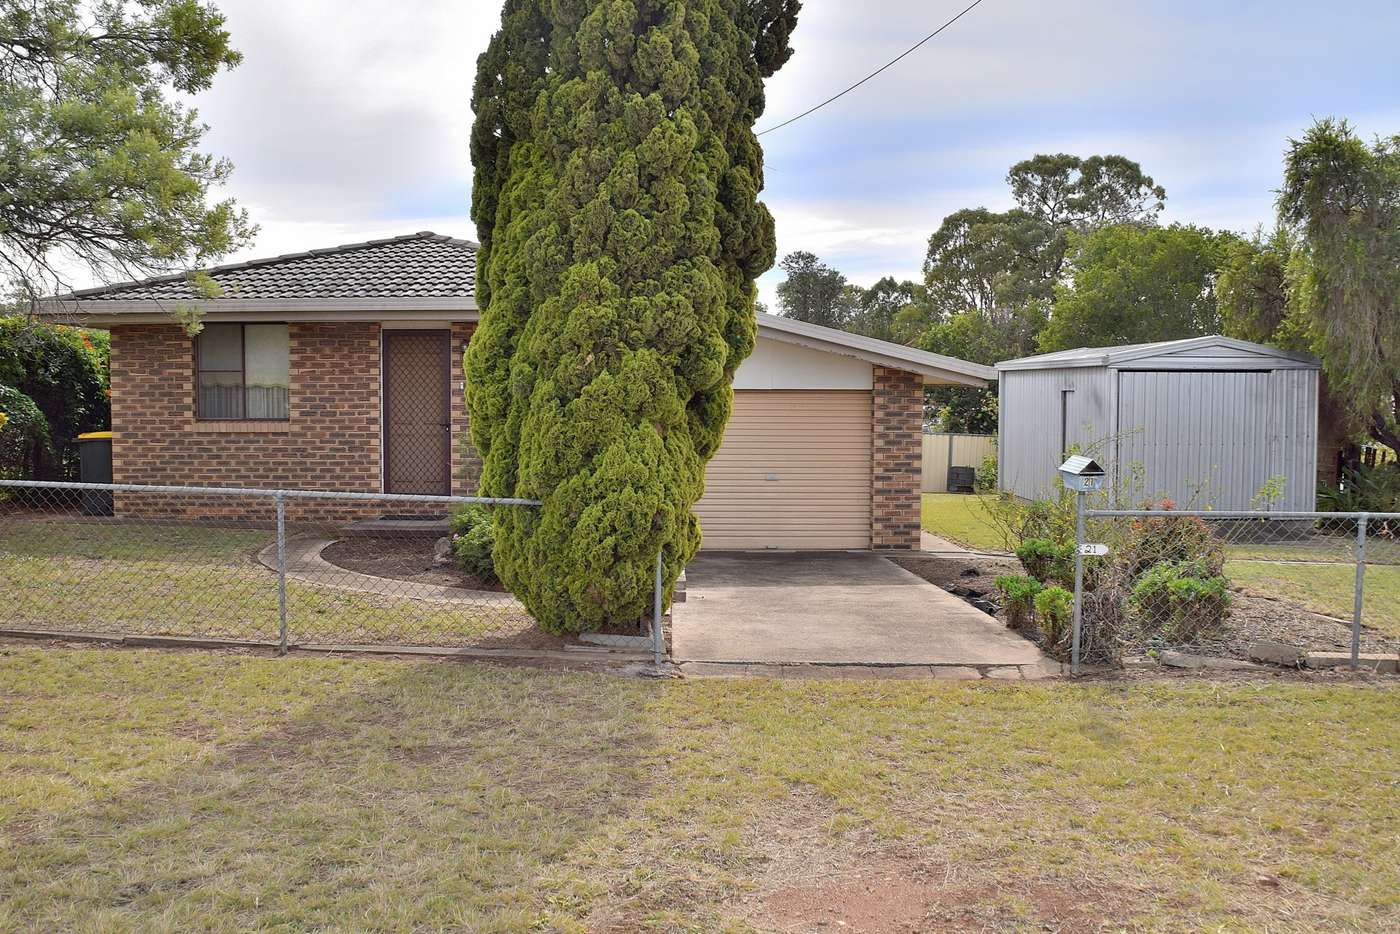 Main view of Homely house listing, 21 Baguley Street, Warwick QLD 4370